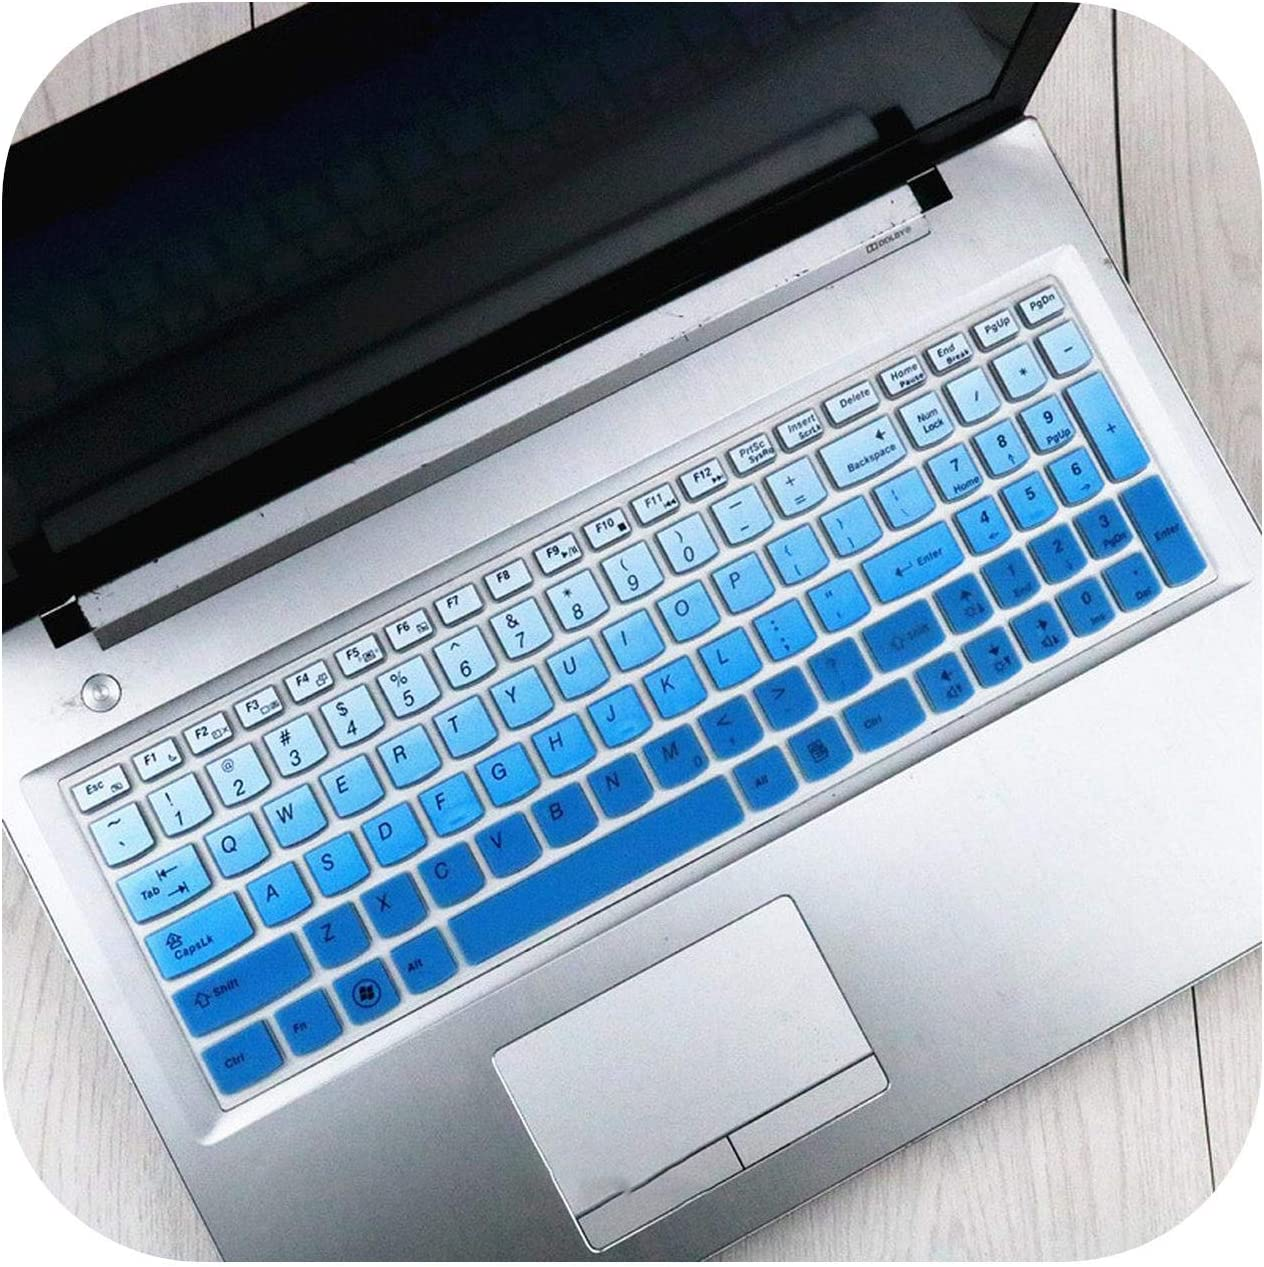 Silicone Keyboard Cover Protector Skin for Lenovo Ideapad Y580 Y570 Y570D Y500 Y510 Y510P Z580 Z560 Z565 Z570 Z575 Laptop-Blue